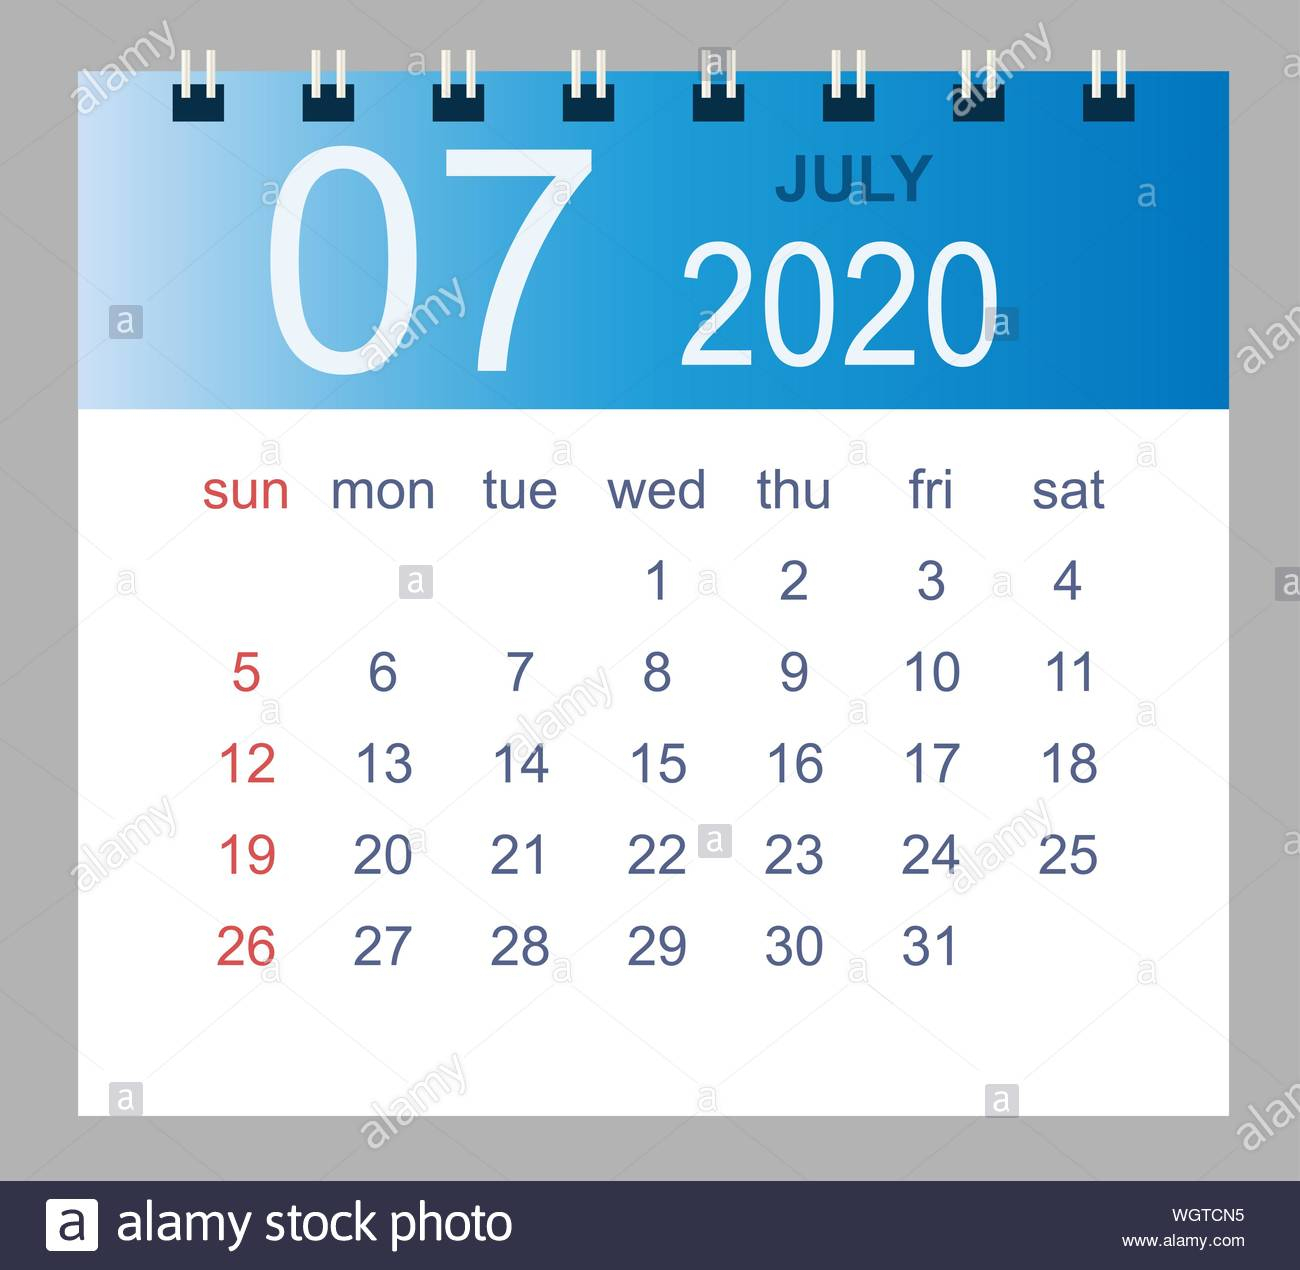 Calendar Month July 2020  Yatay.horizonconsulting.co for Wincalendar July 2020